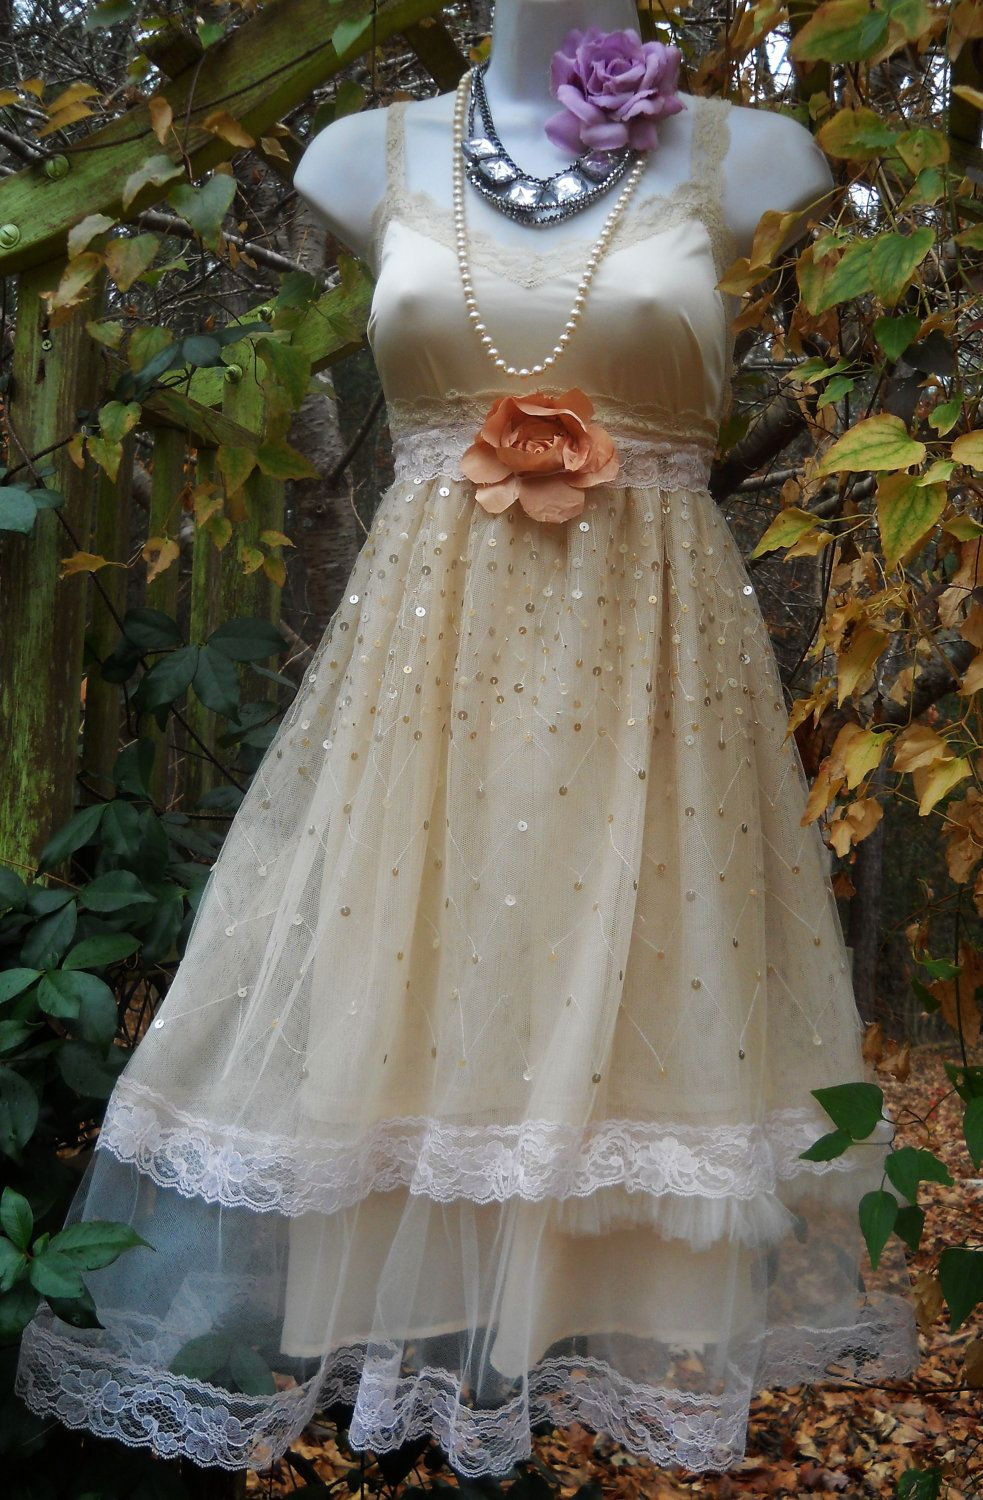 Tulle party dress sequins lace cream  rose baby doll  wedding bridesmaid vintage   romantic medium by vintage opulence on Etsy. $120.00, via Etsy.